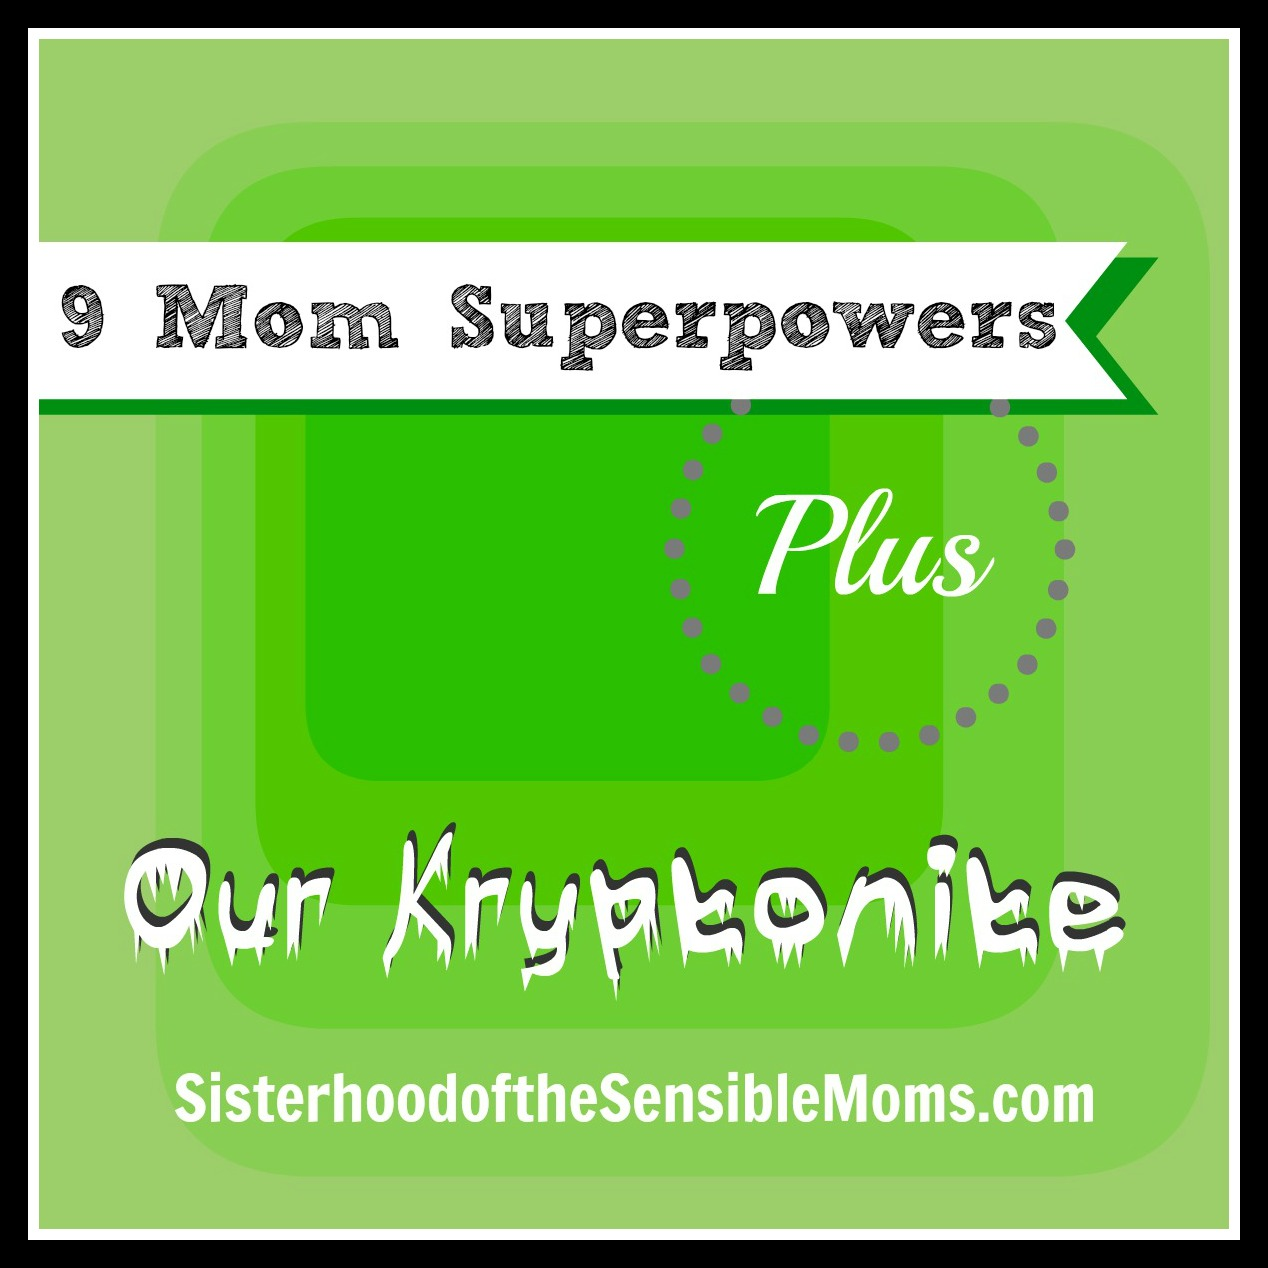 9 Mom Superpowers Plus Our Kryptonite by Sisterhood of the Sensible Moms